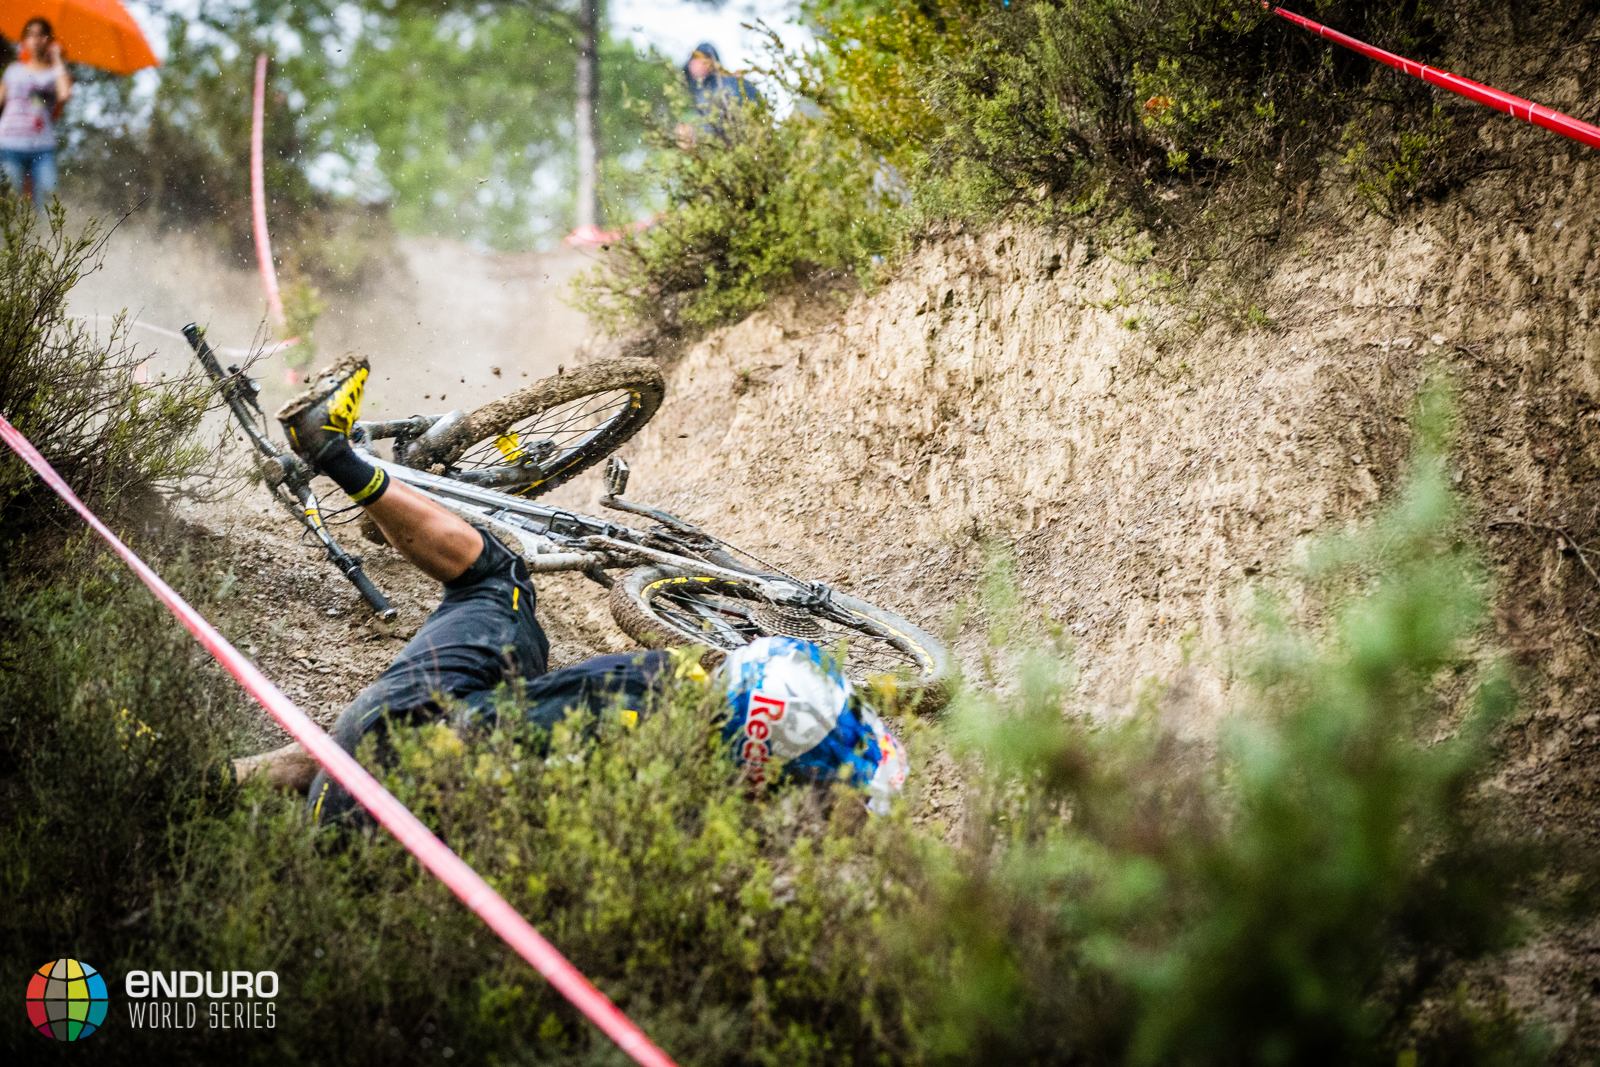 Matti Lehikoinen found conditions slick as the rain began to fall. EWS round 7, Ainsa, Spain. Photo by Matt Wragg.